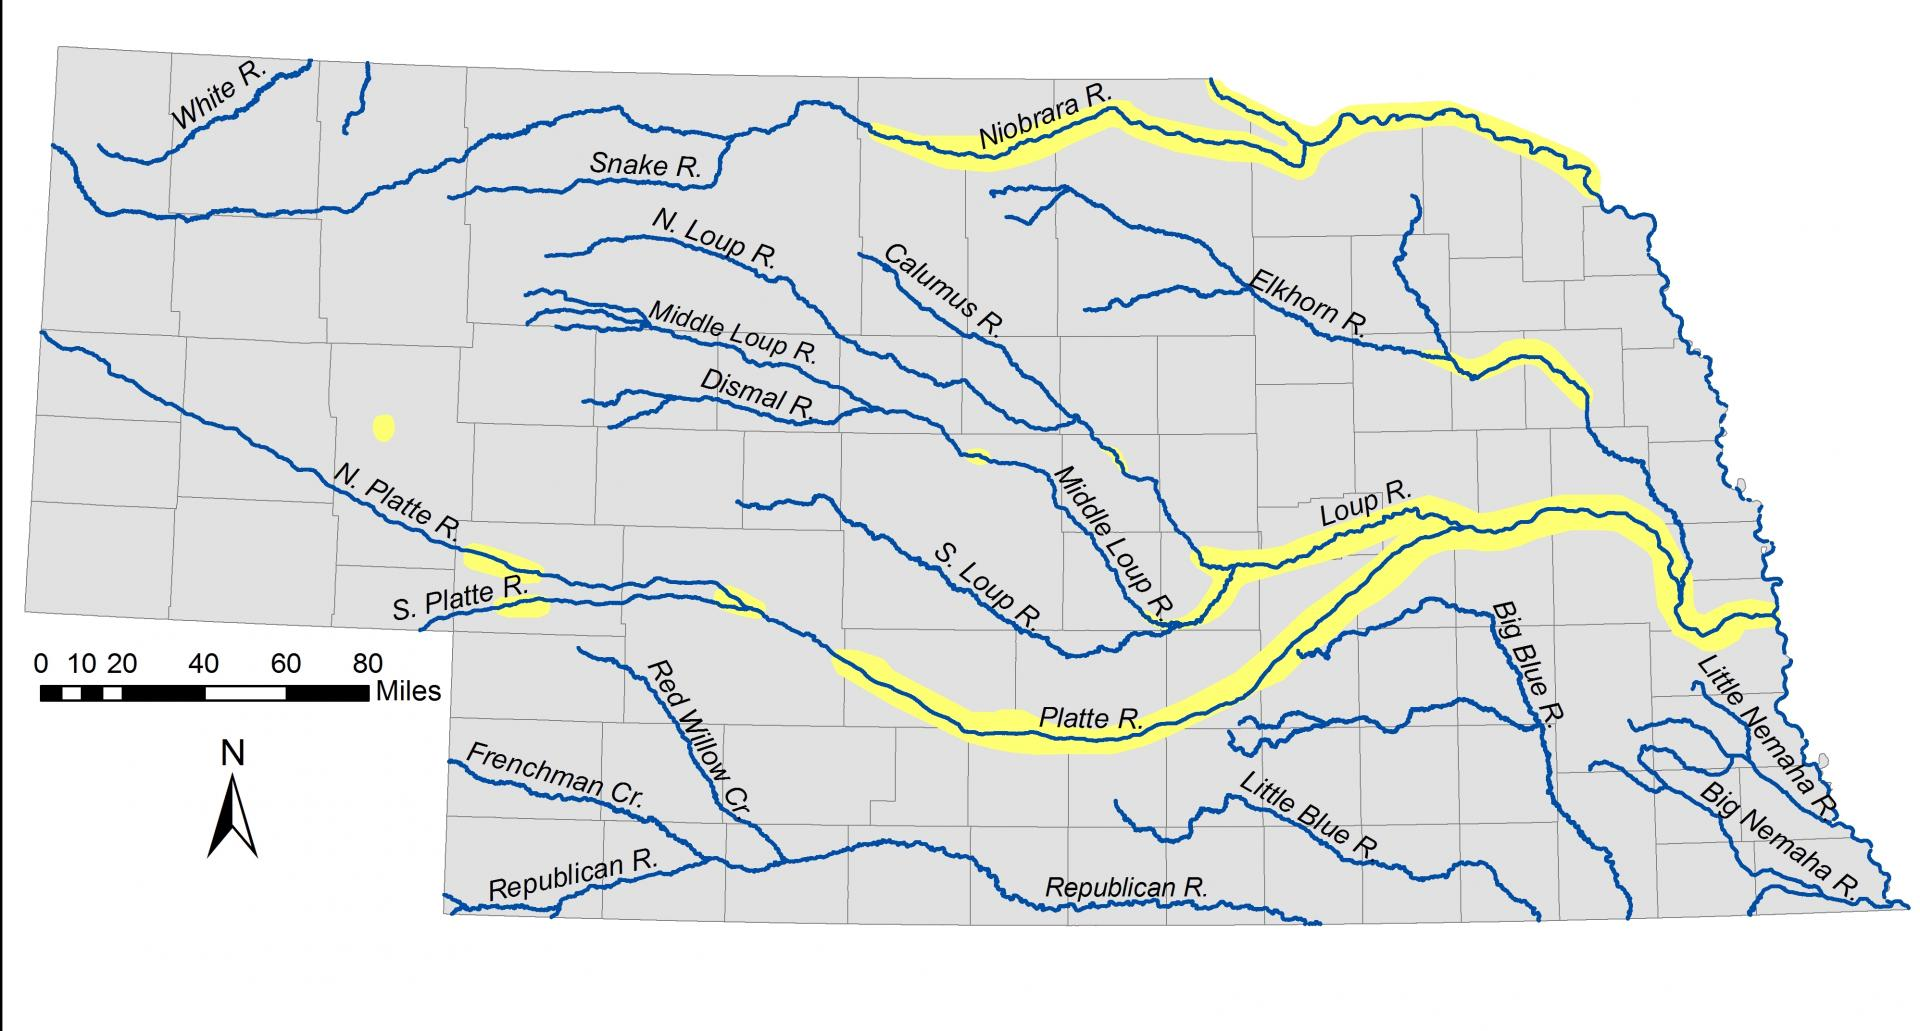 Nebraska Rivers Map Swimnovacom - Nebraska rivers map